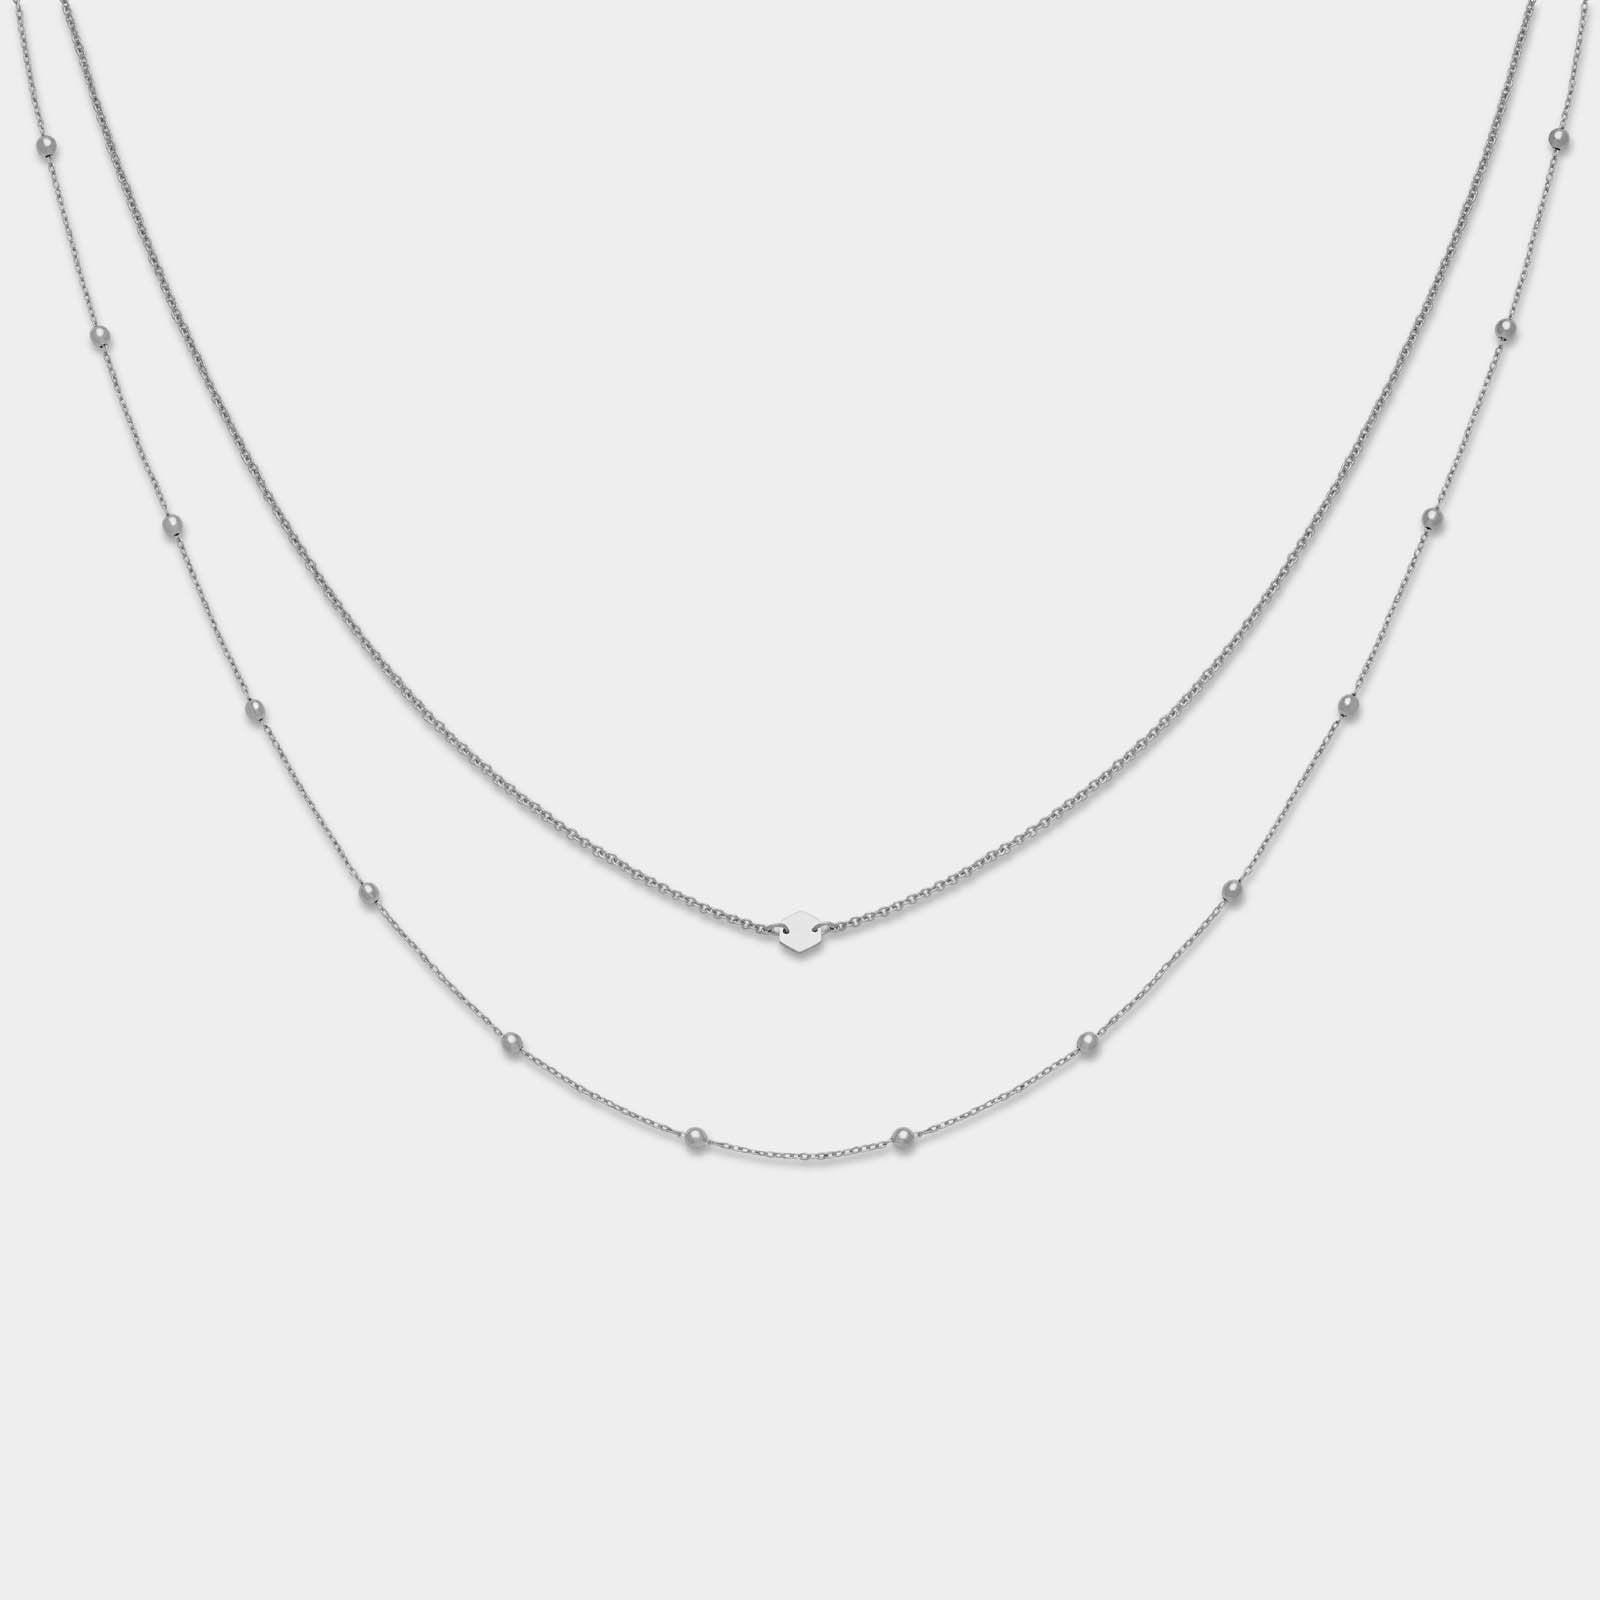 CLUSE Essentielle Silver Set of Two Necklaces With Petite Hexagon CLJ22004 - necklace set